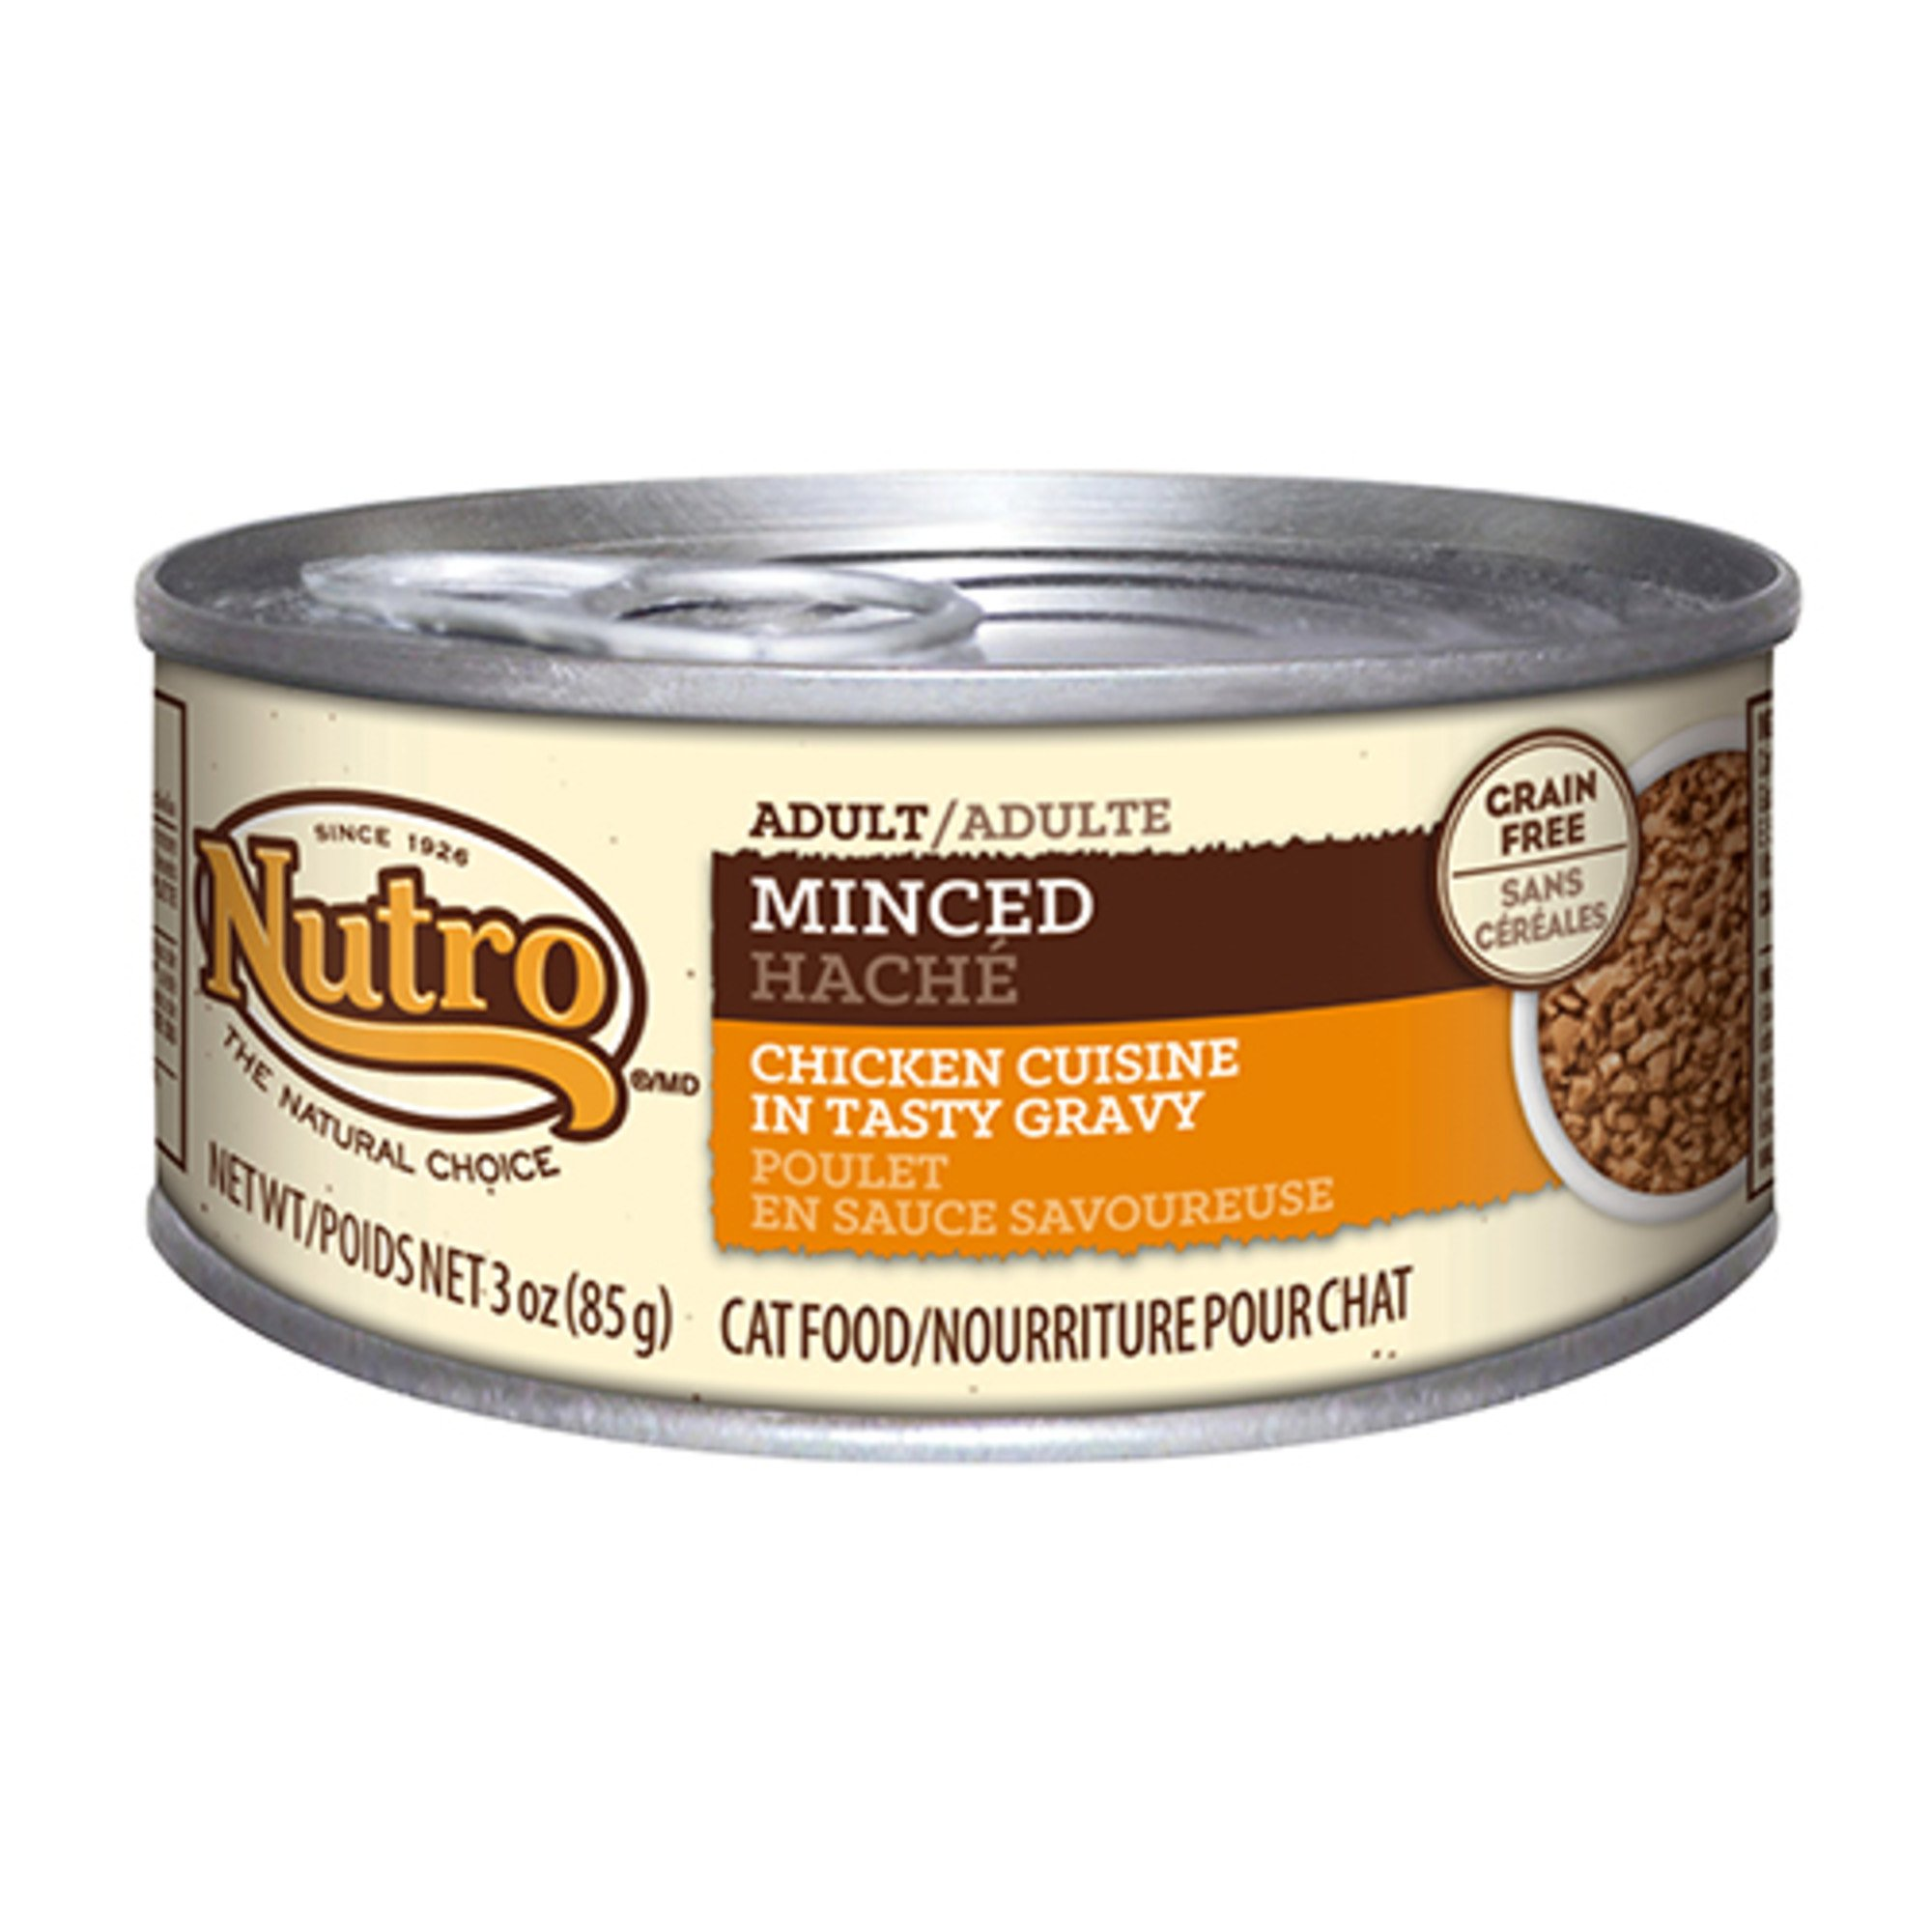 Natural Choice Canned Dog Food